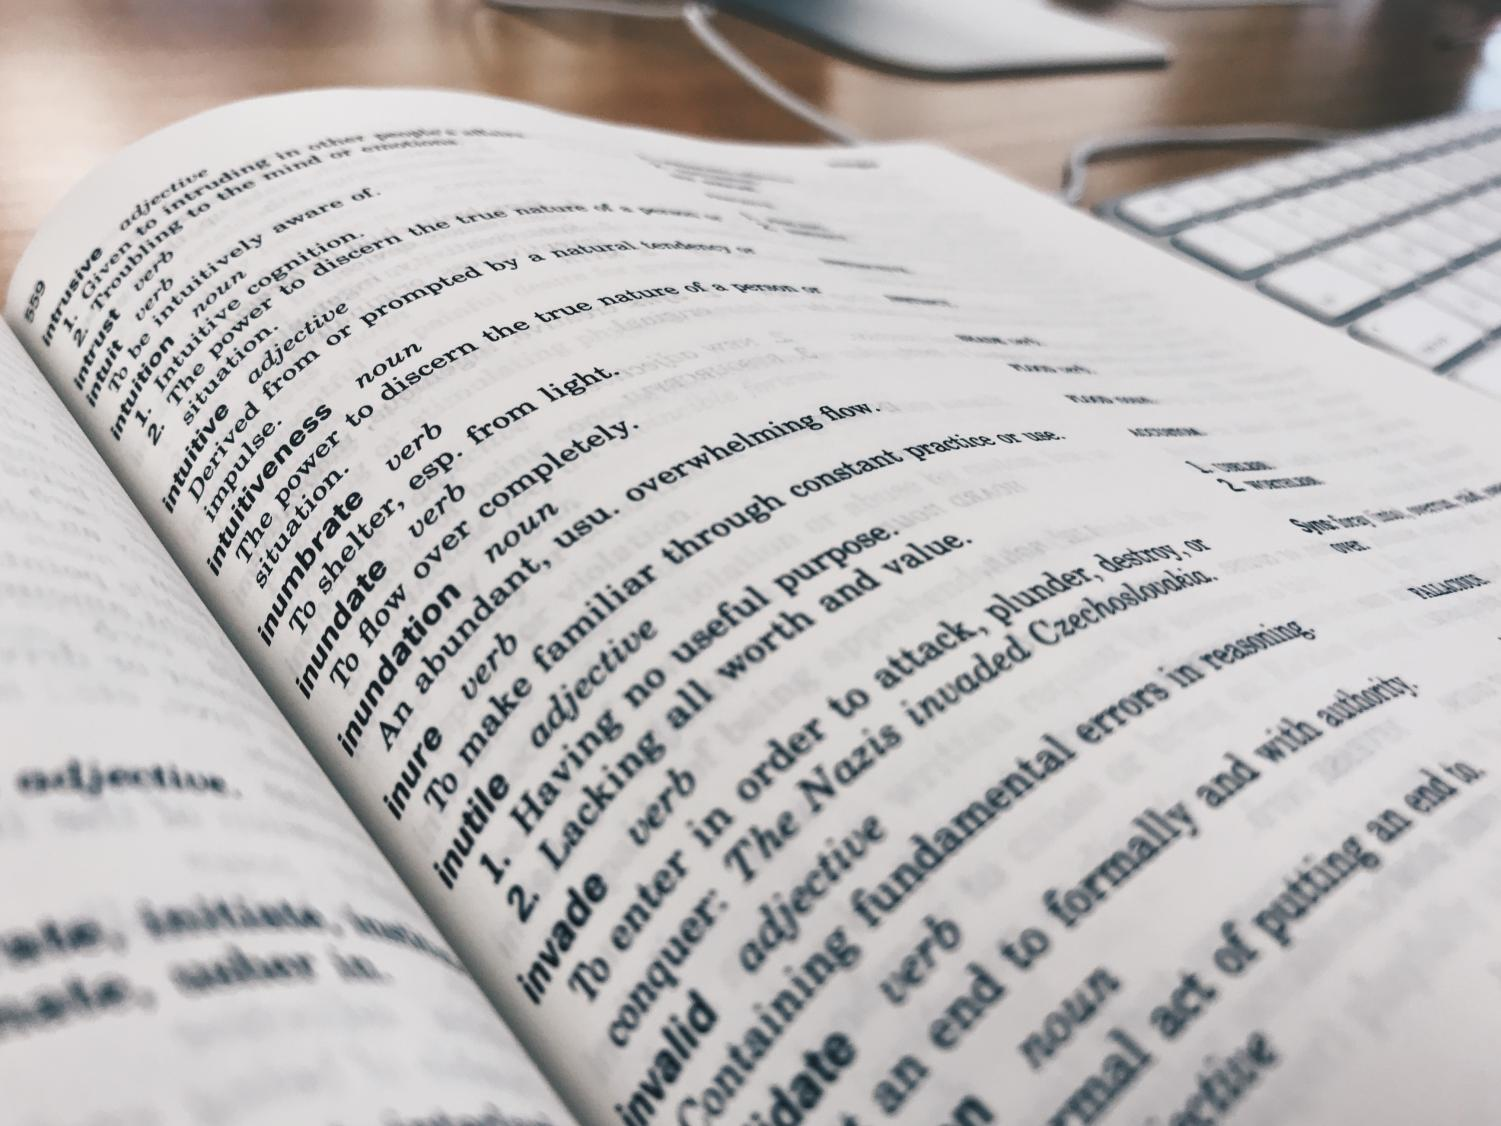 One should be inclined to carry a dictionary like the one pictured above in order to appear much smarter than those around them.